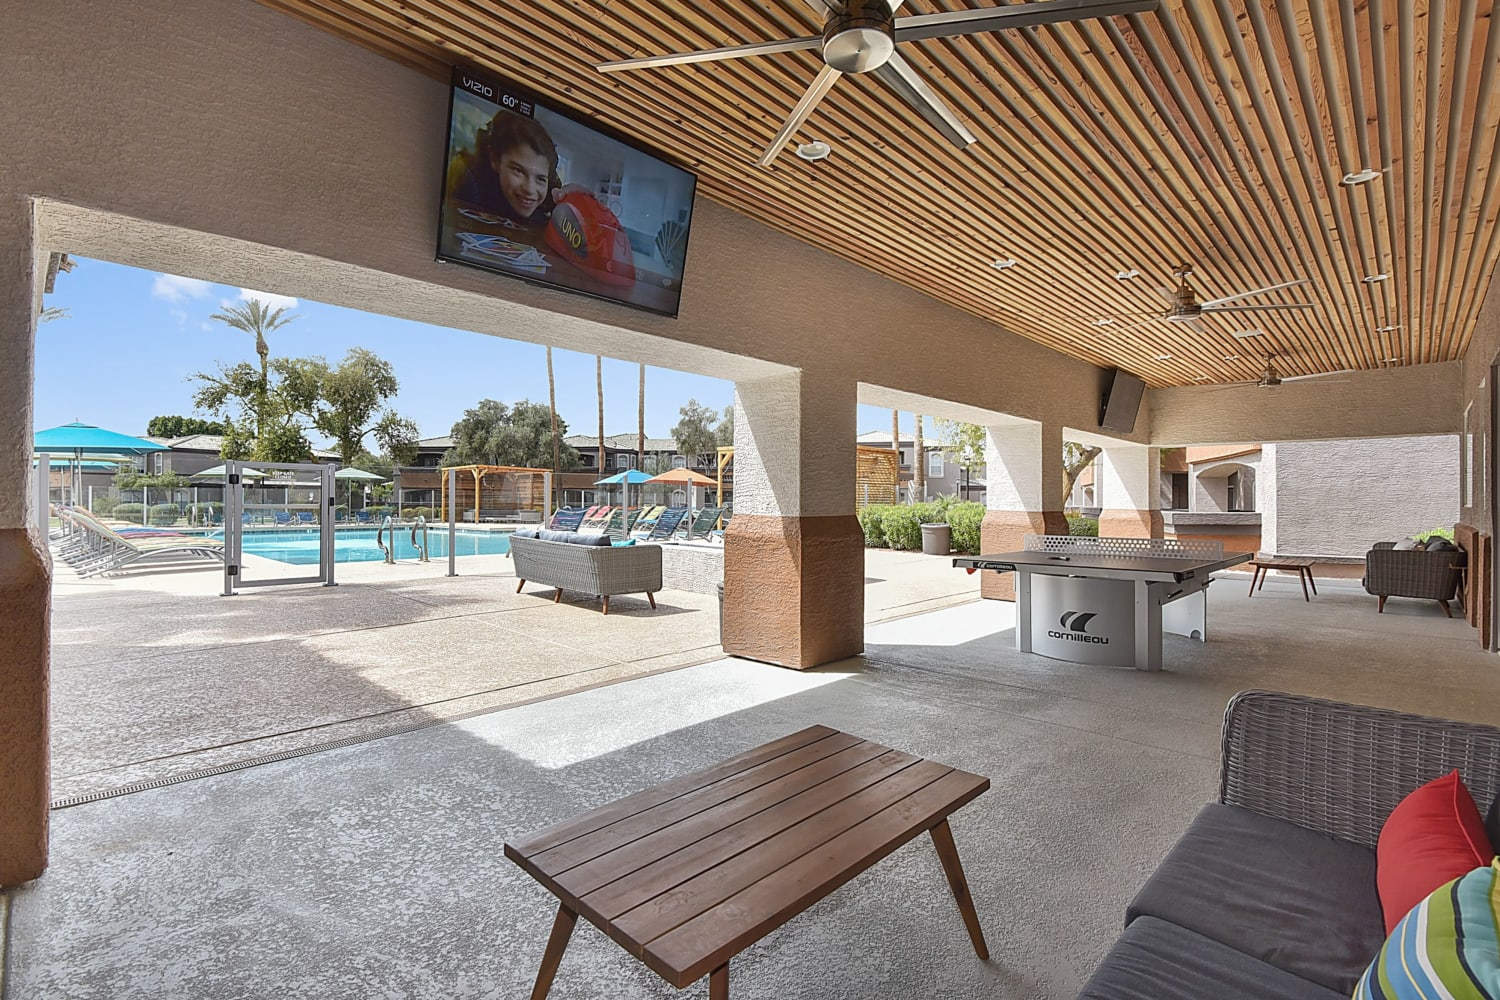 Covered patio seating with ping pong and a TV at Luxe @ Ocotillo in Chandler, Arizona